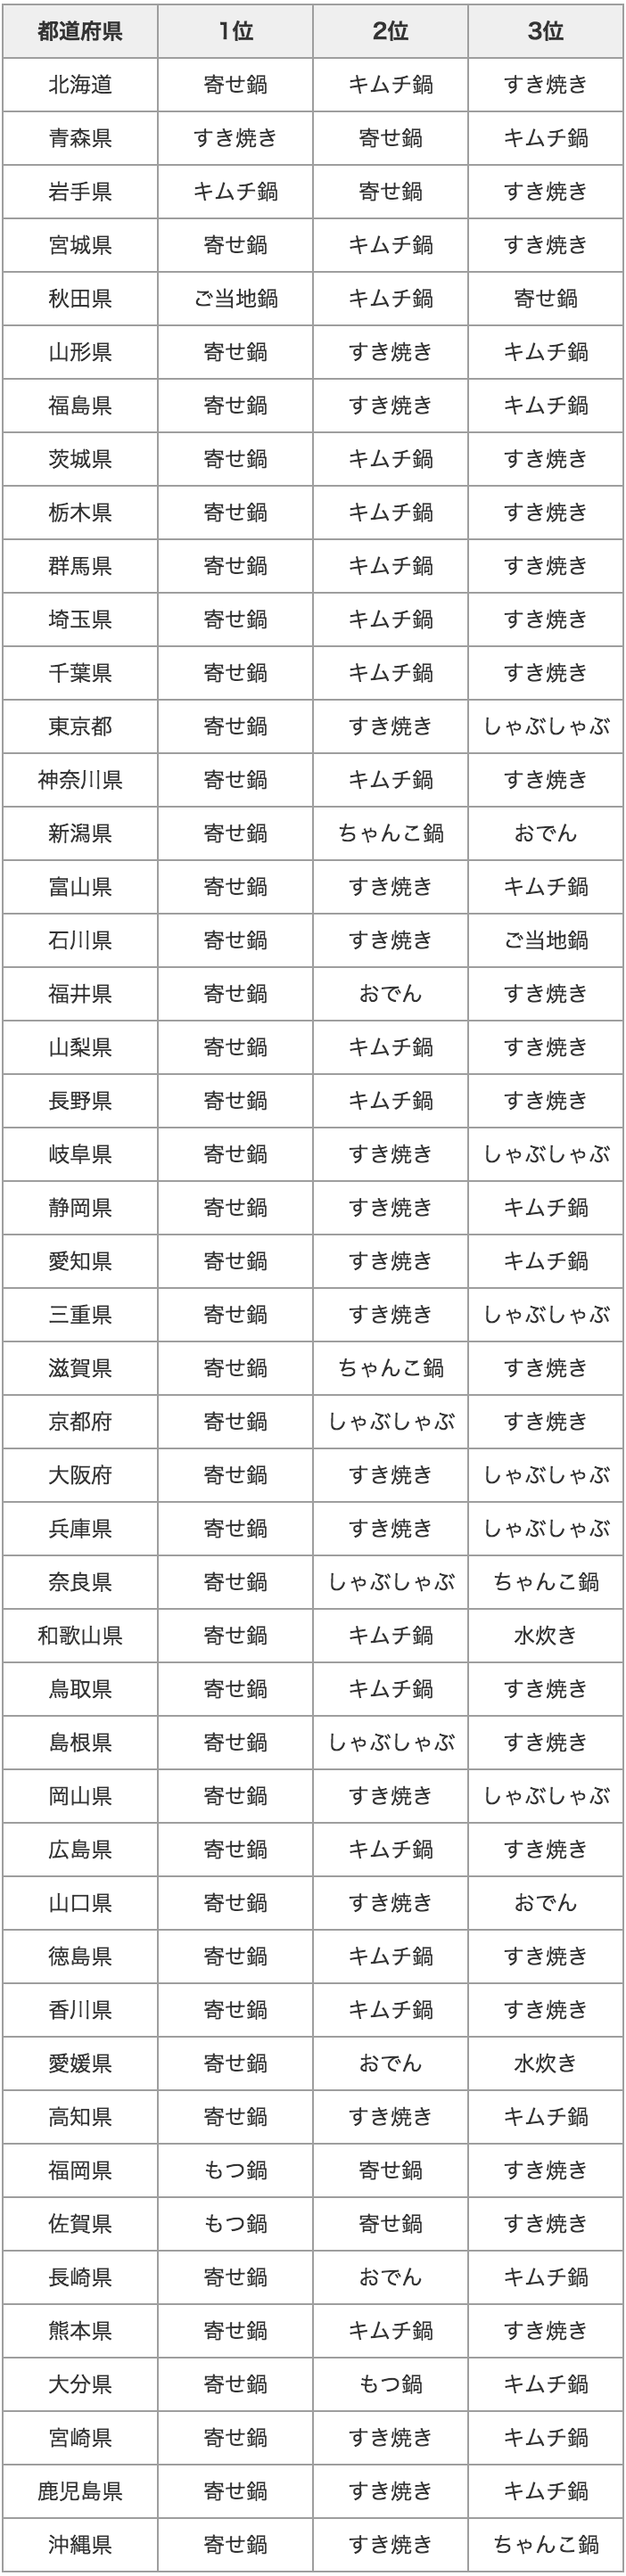 20120111_table2